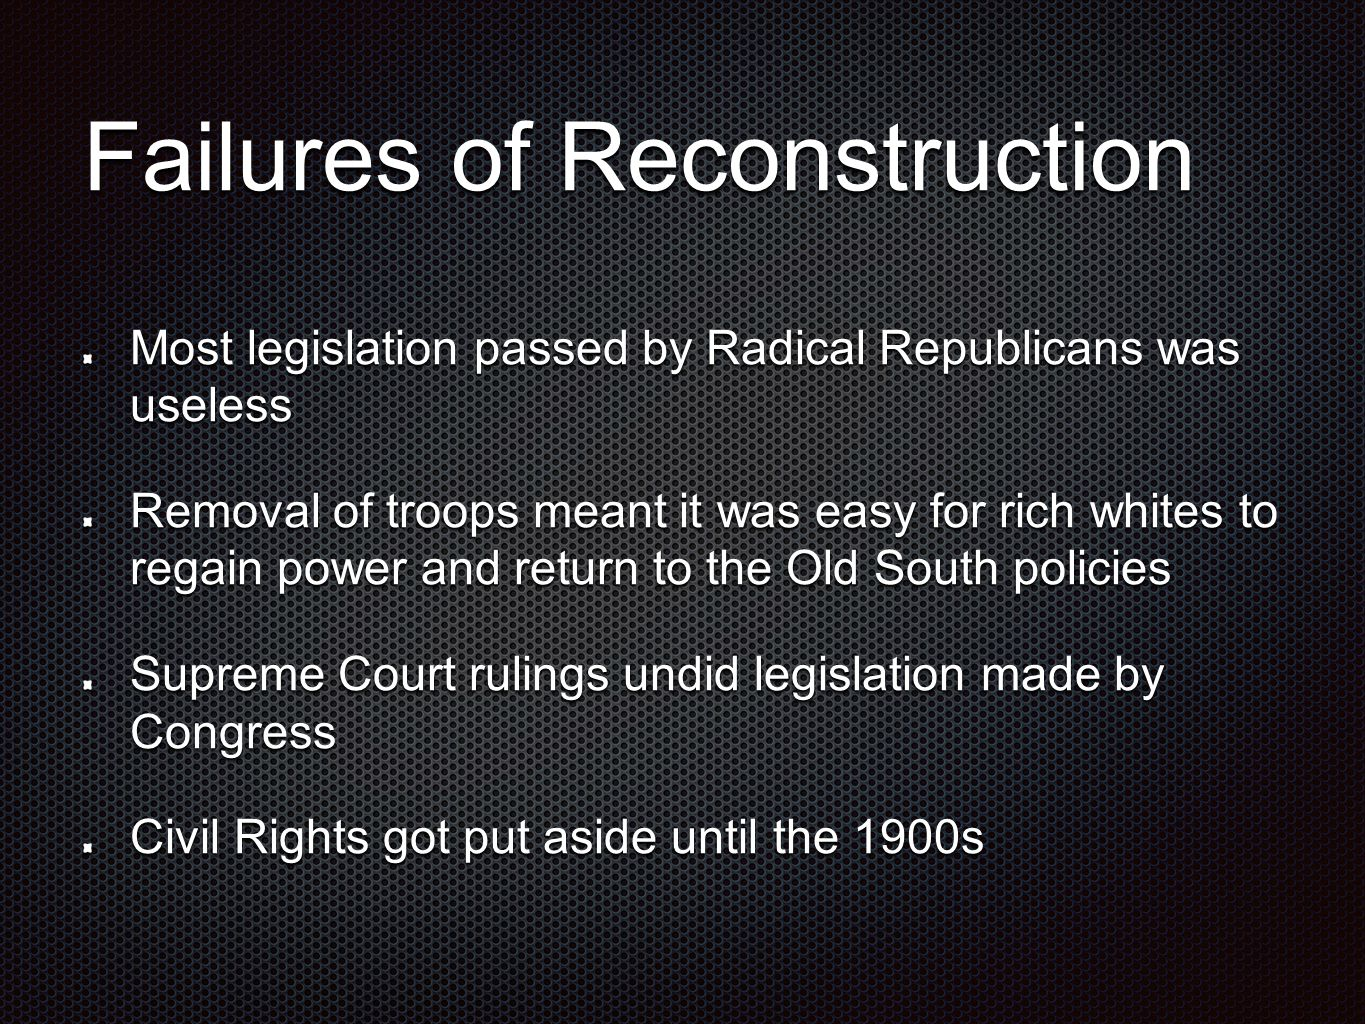 Failures of Reconstruction Most legislation passed by Radical Republicans was useless Removal of troops meant it was easy for rich whites to regain power and return to the Old South policies Supreme Court rulings undid legislation made by Congress Civil Rights got put aside until the 1900s